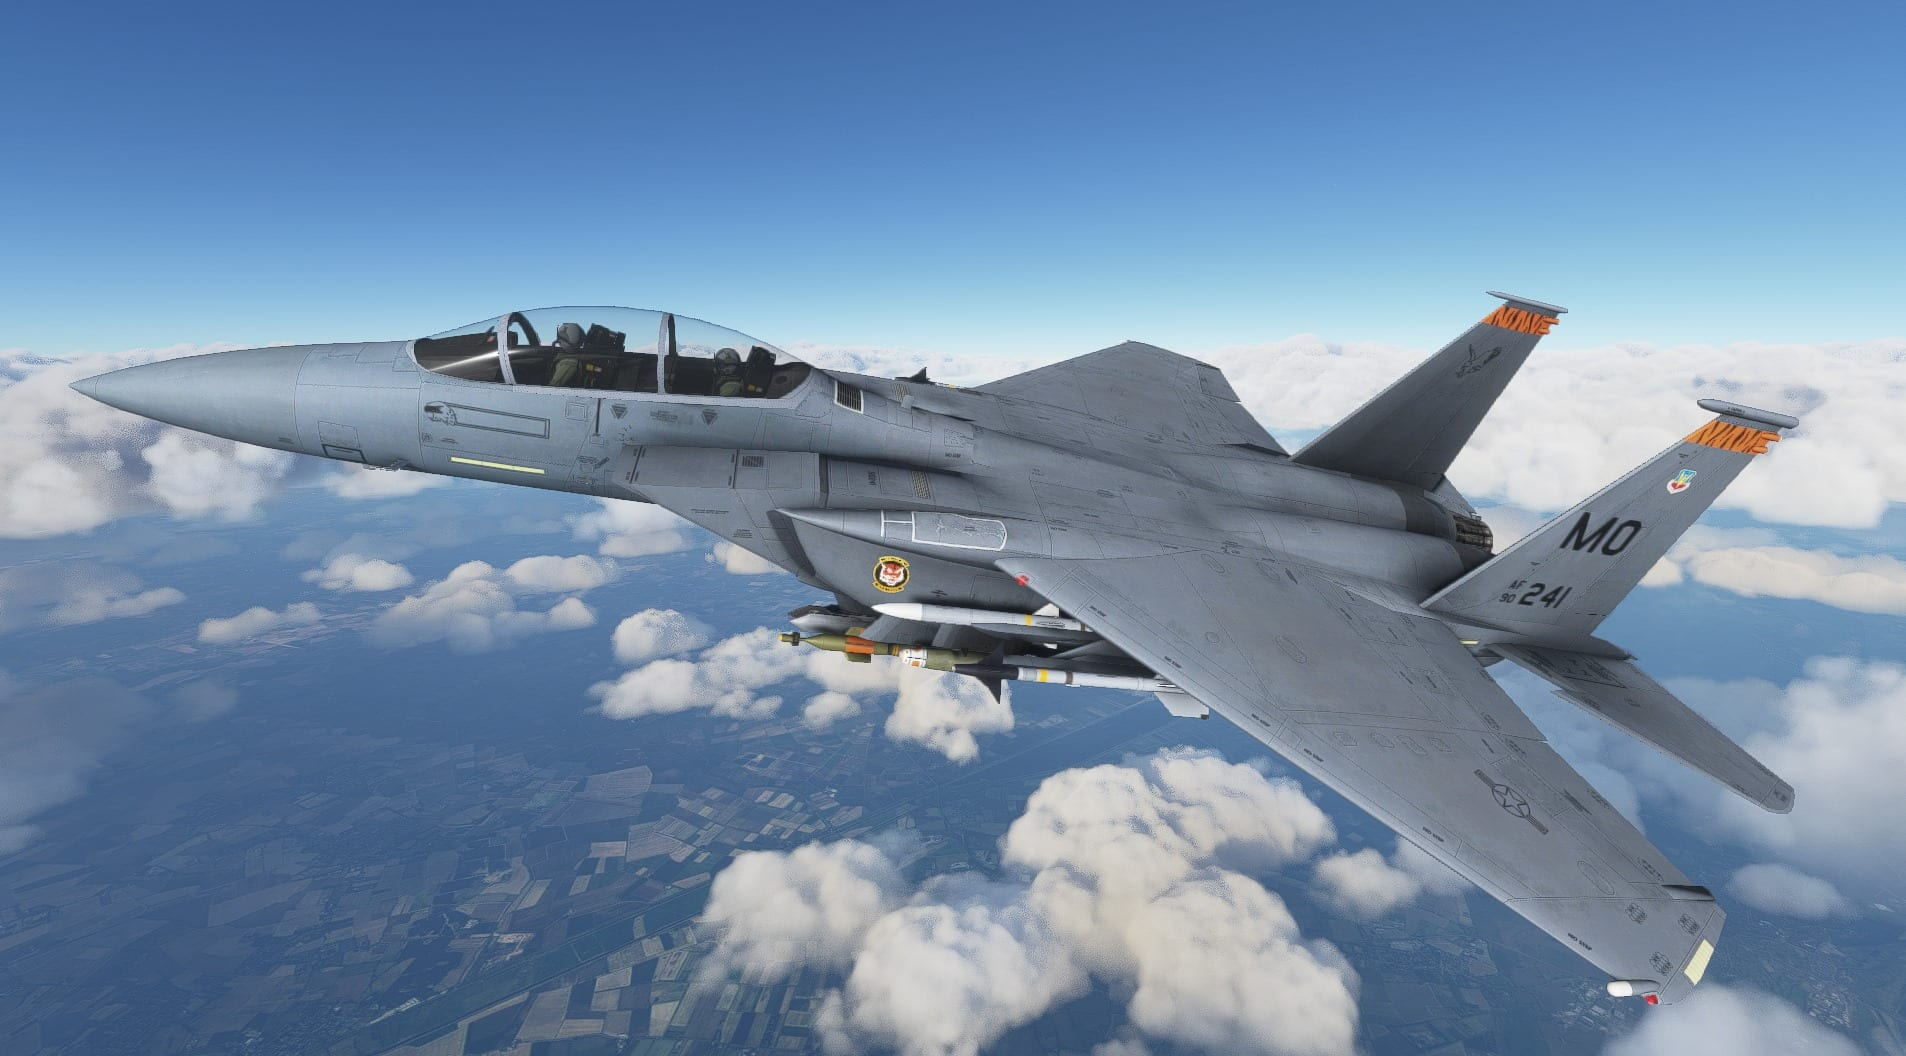 Microsoft Flight Simulator F-15 Add-on Gets New Video All About The Roar of Its Engines